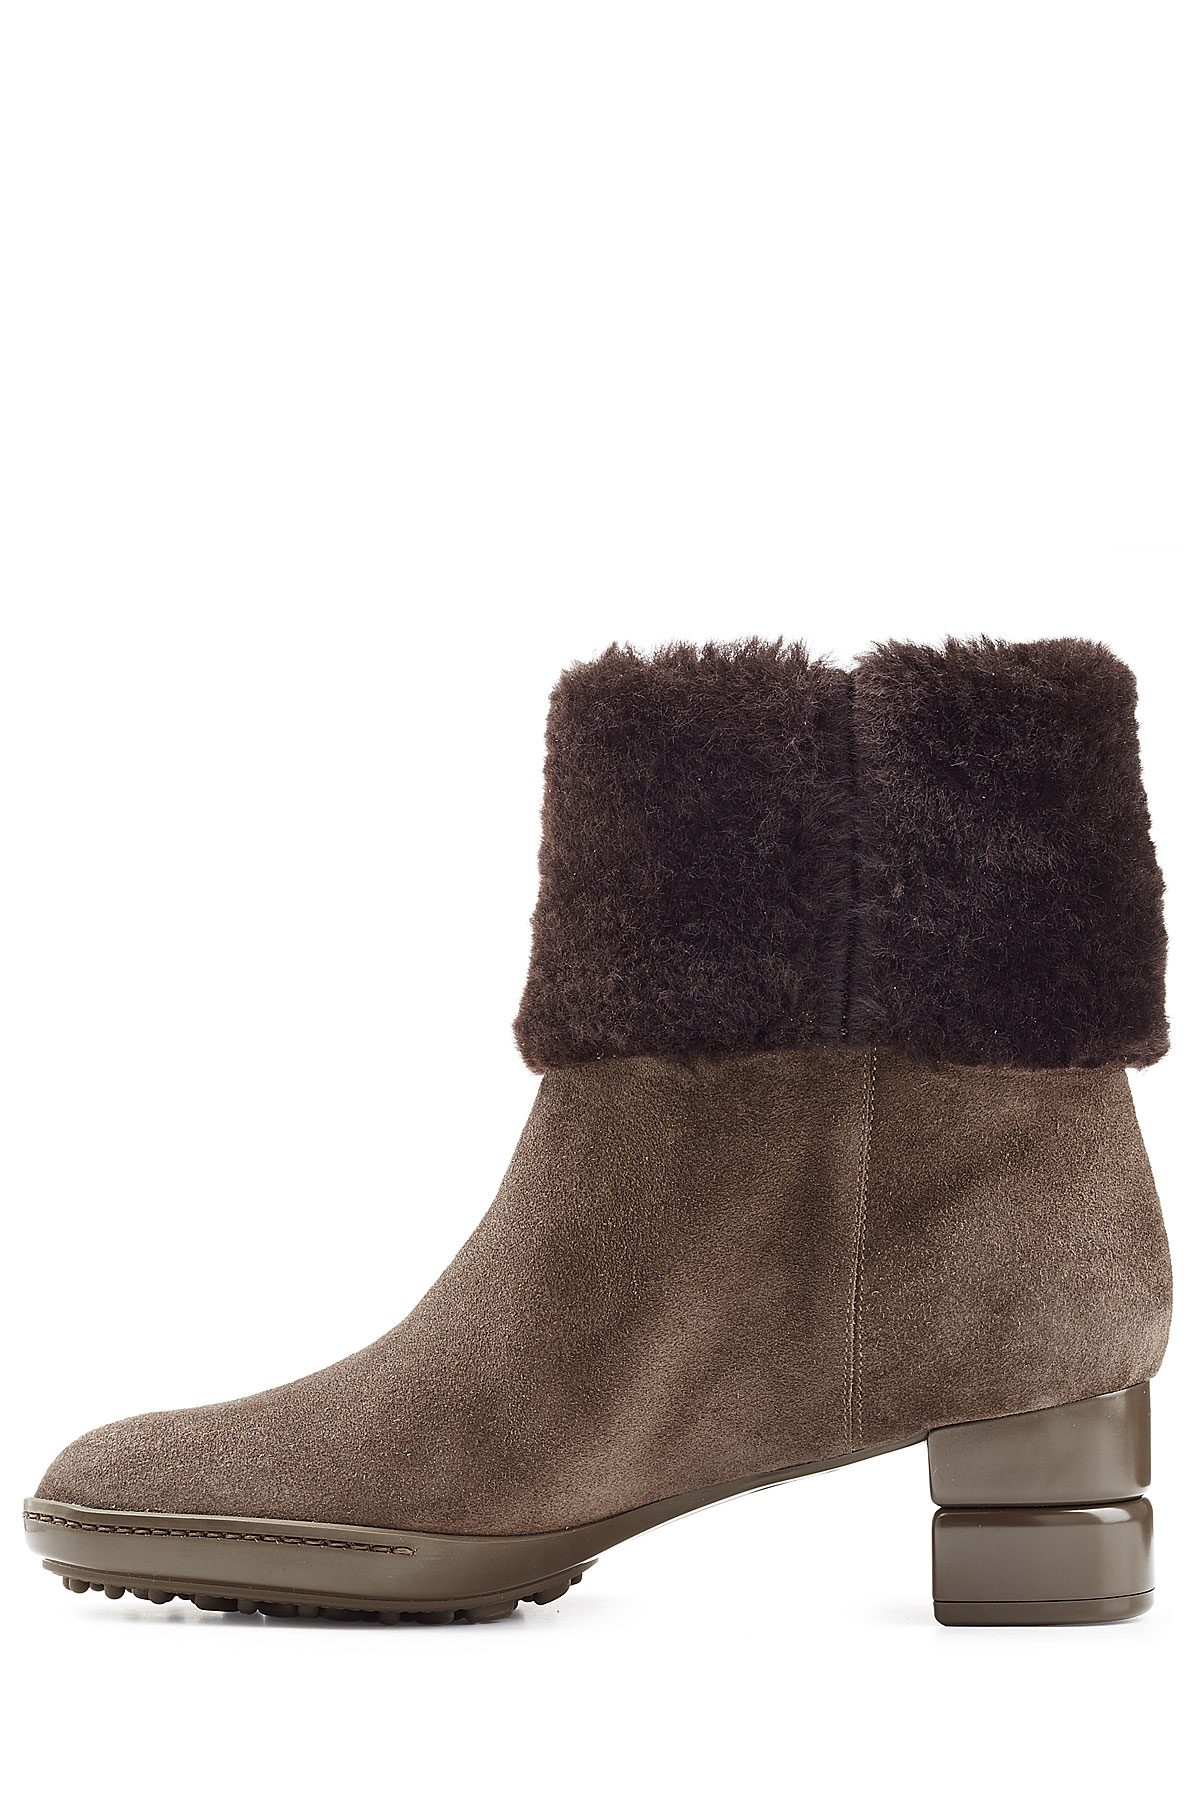 ferragamo suede ankle boots with sheepskin in brown lyst